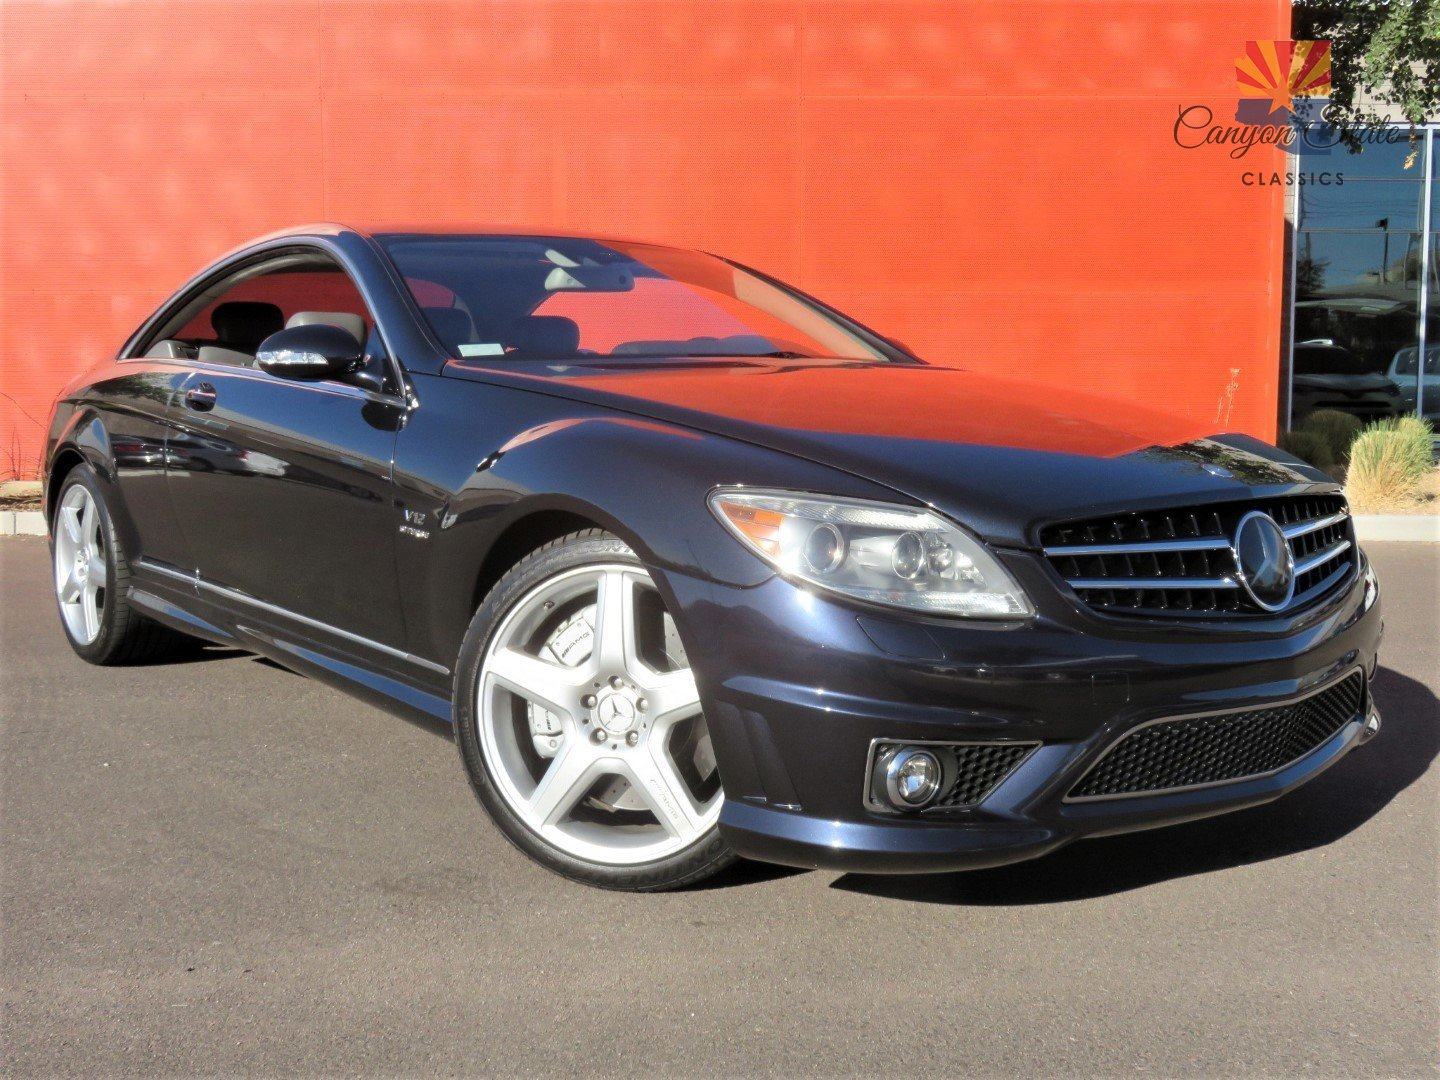 2008 Mercedes-Benz CL-Class | Canyon State Classics